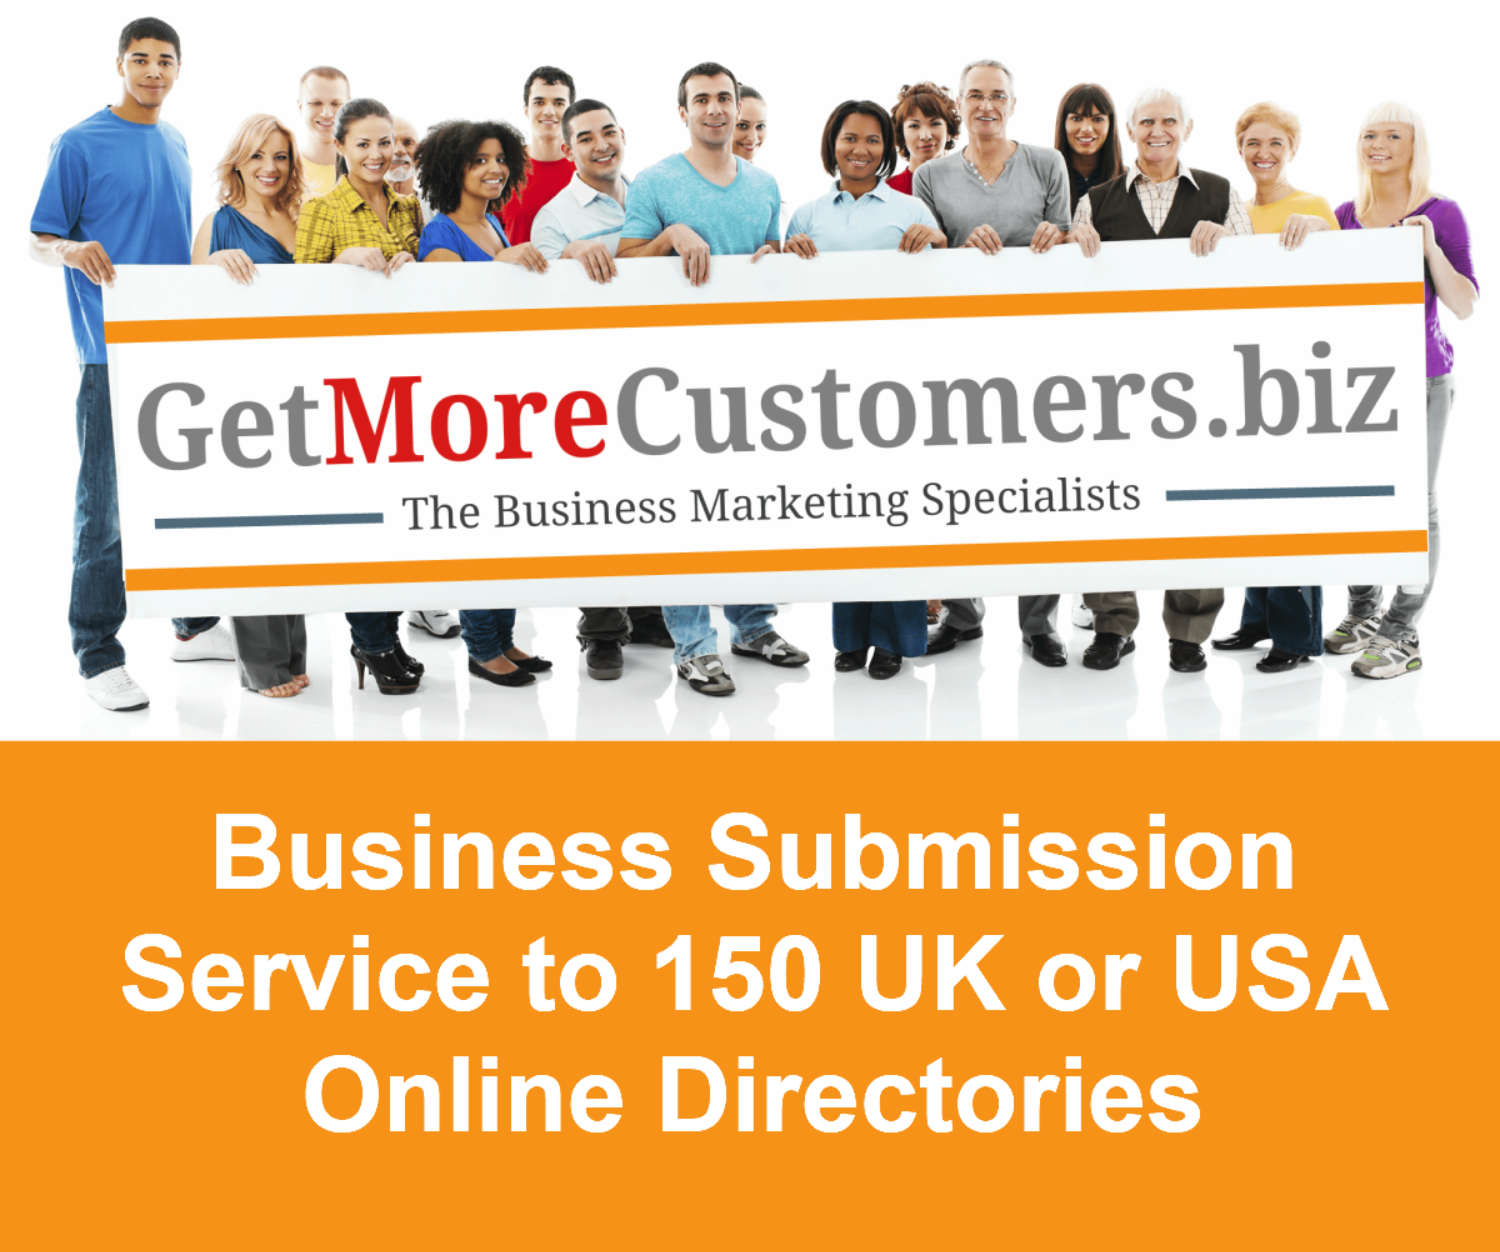 Submission to 150 Directories (UK or USA) $99.00